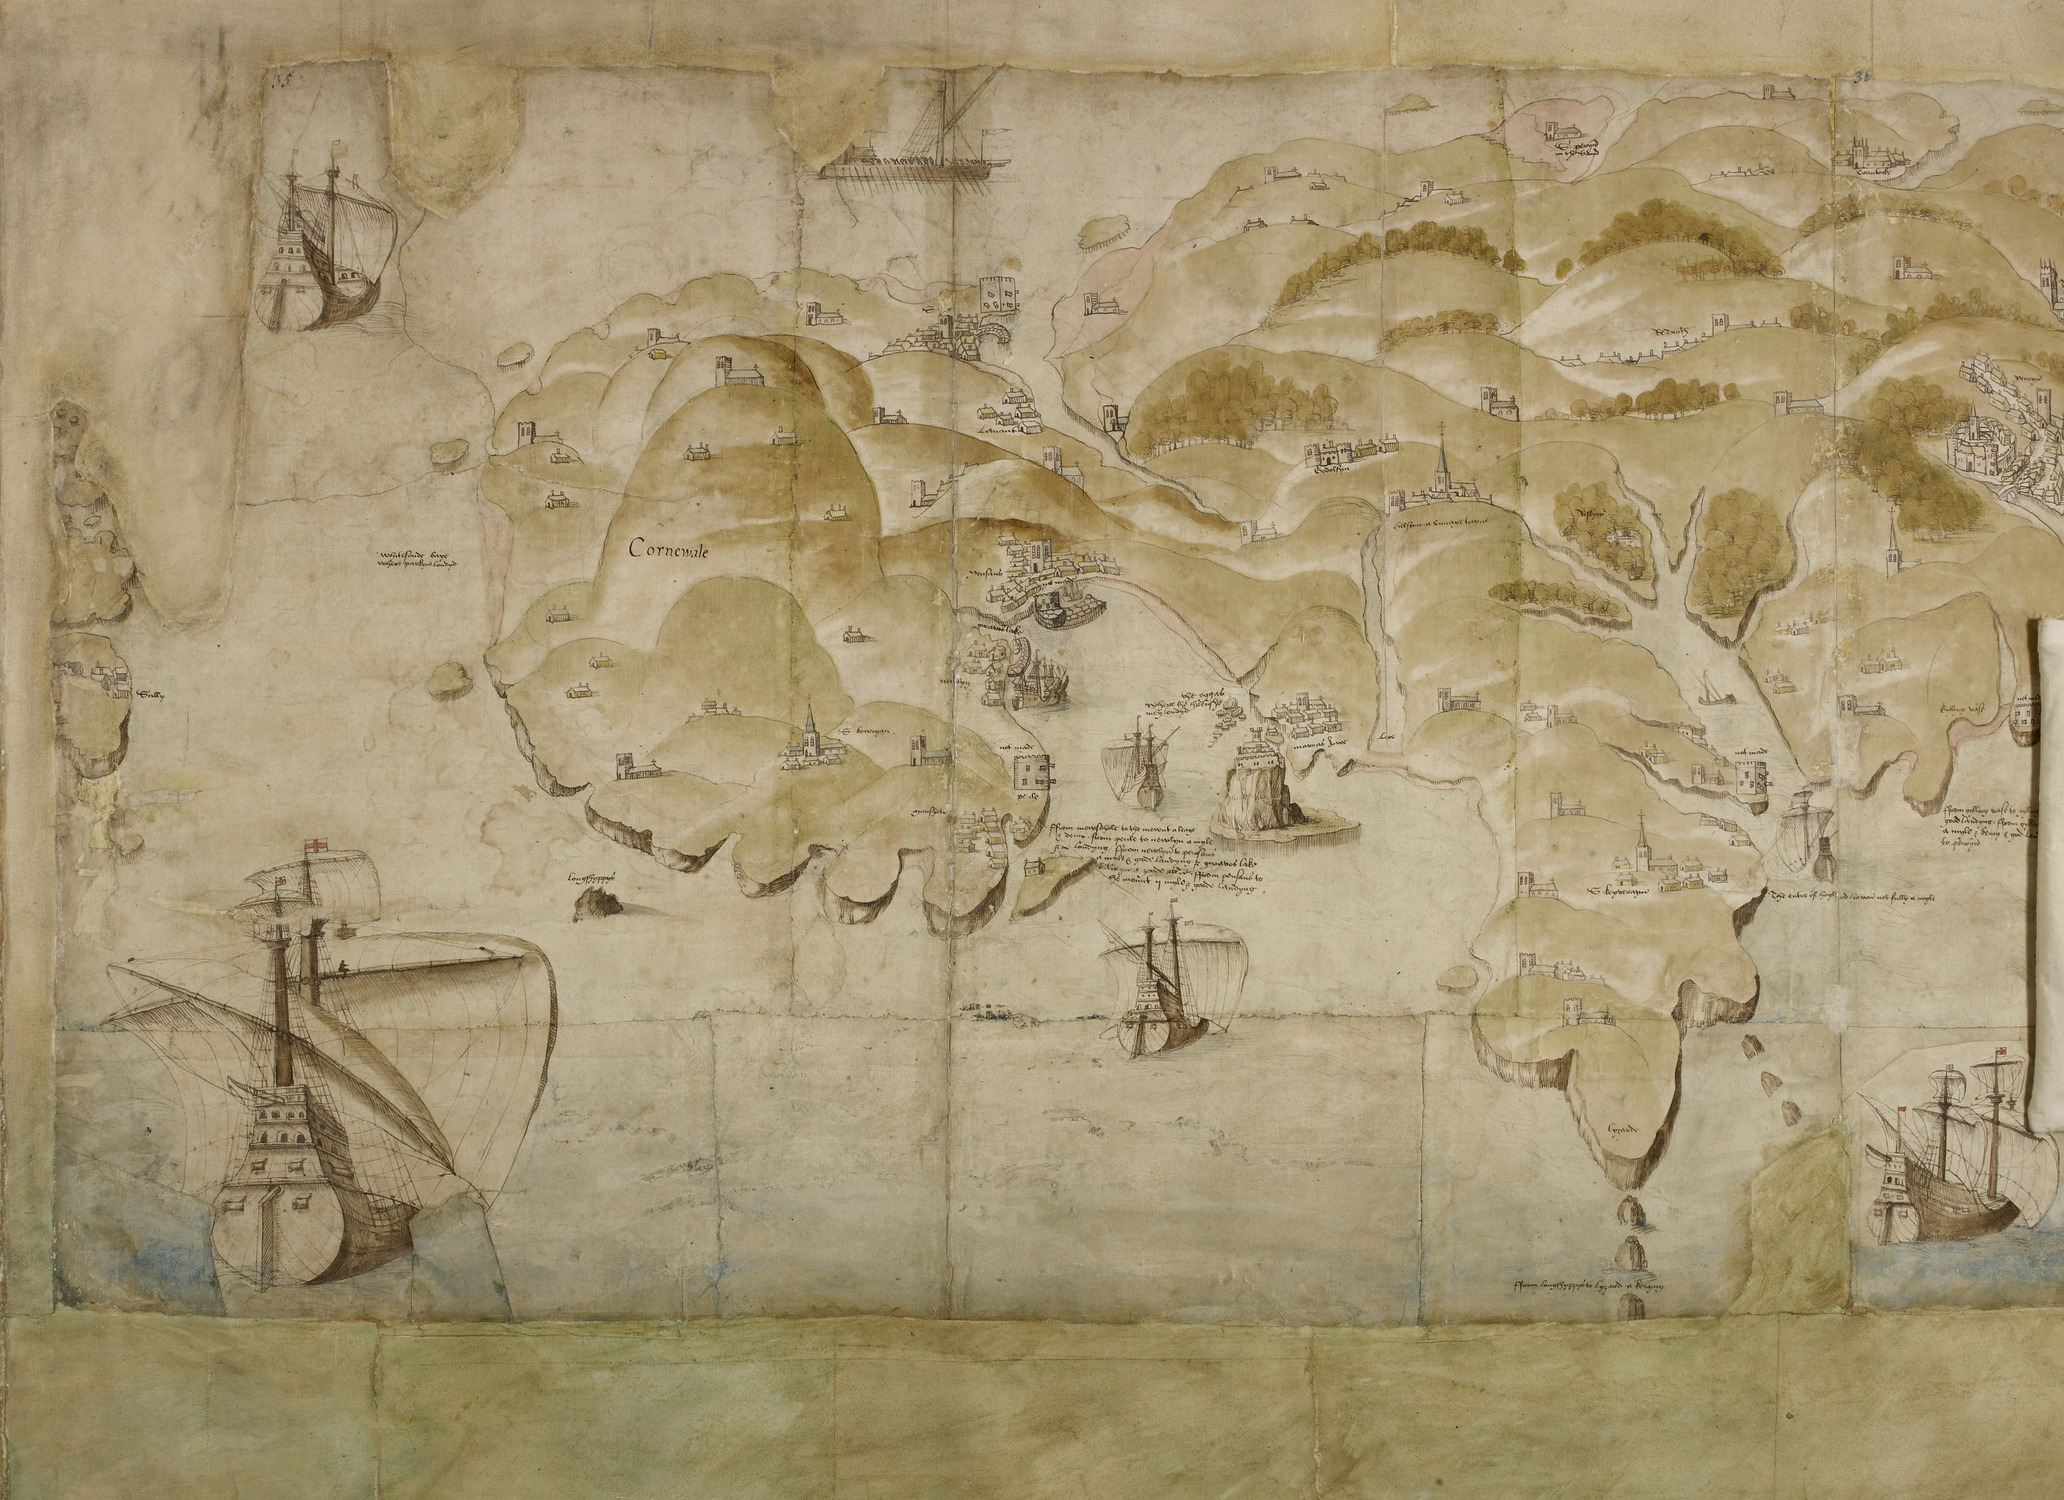 File:Map of Cornish coastline (c.1539) - BL Cotton MS Augustus